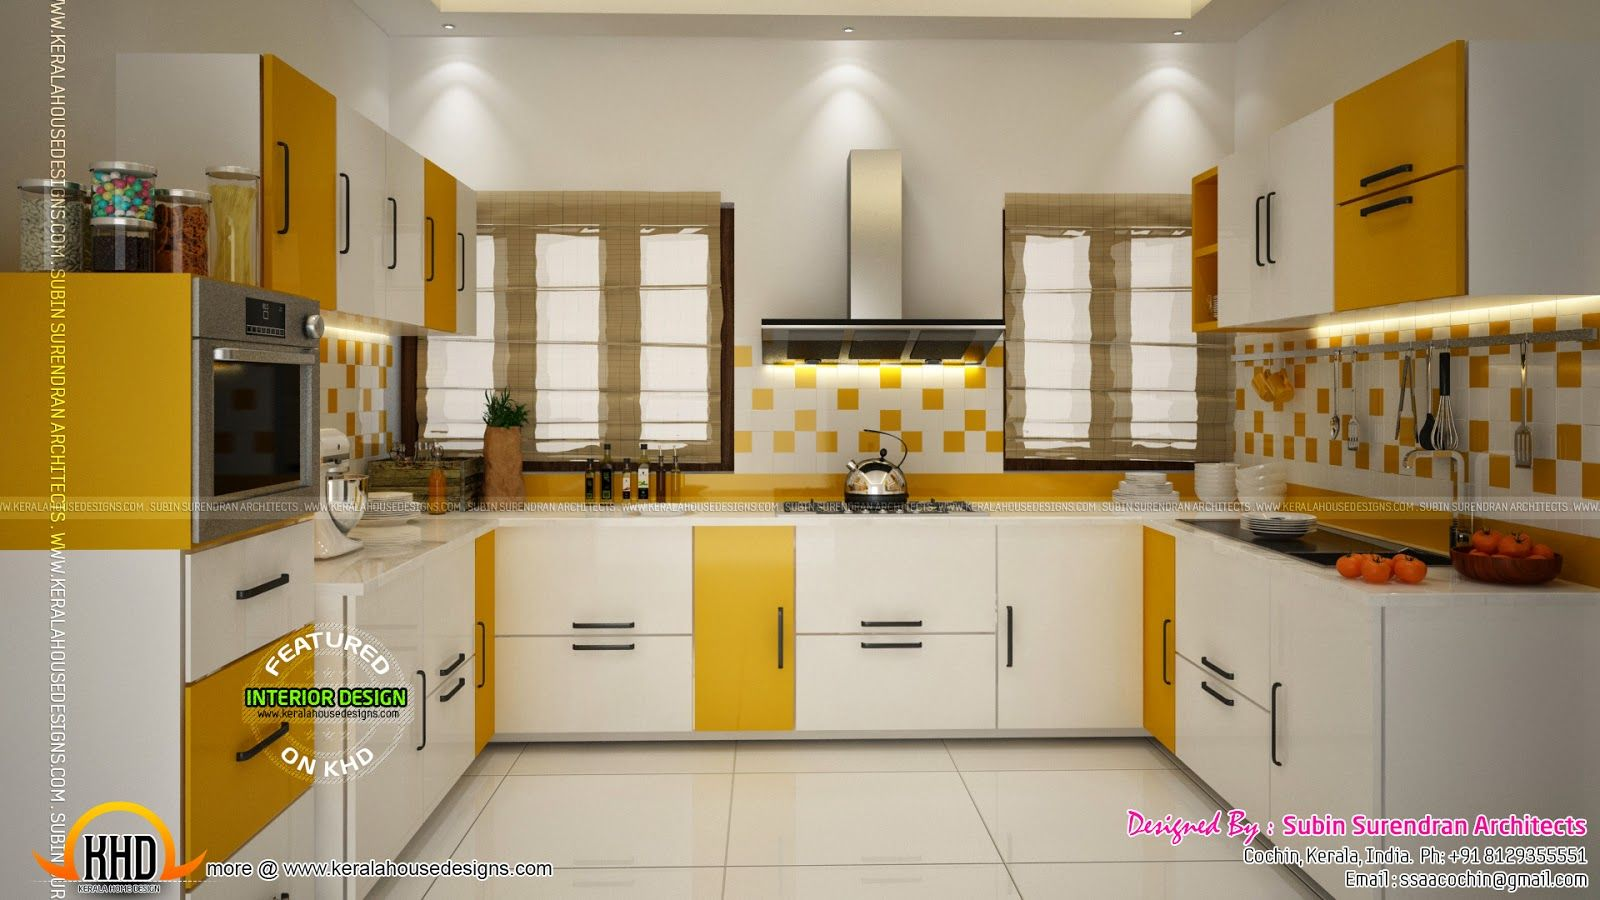 Modern Kitchen Kerala Style delighful modern kitchen kerala style room designs in decor